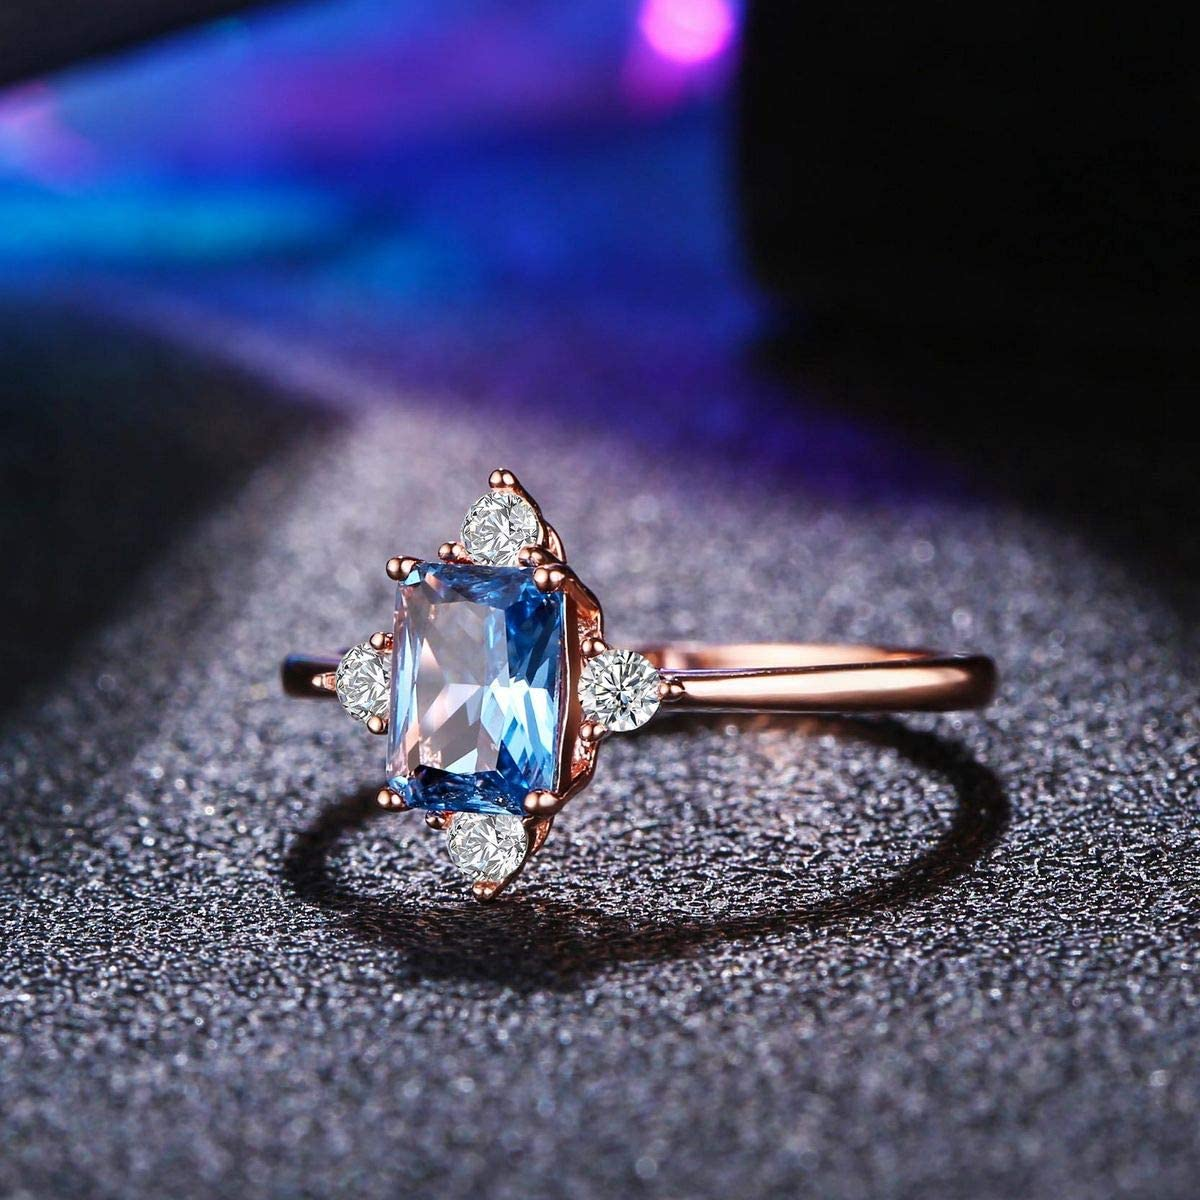 LAZLUVU Blue Topaz Rings Rose Gold Engagement Promise Cubic Zirconia Rings Size 5-10 for Womens Mom